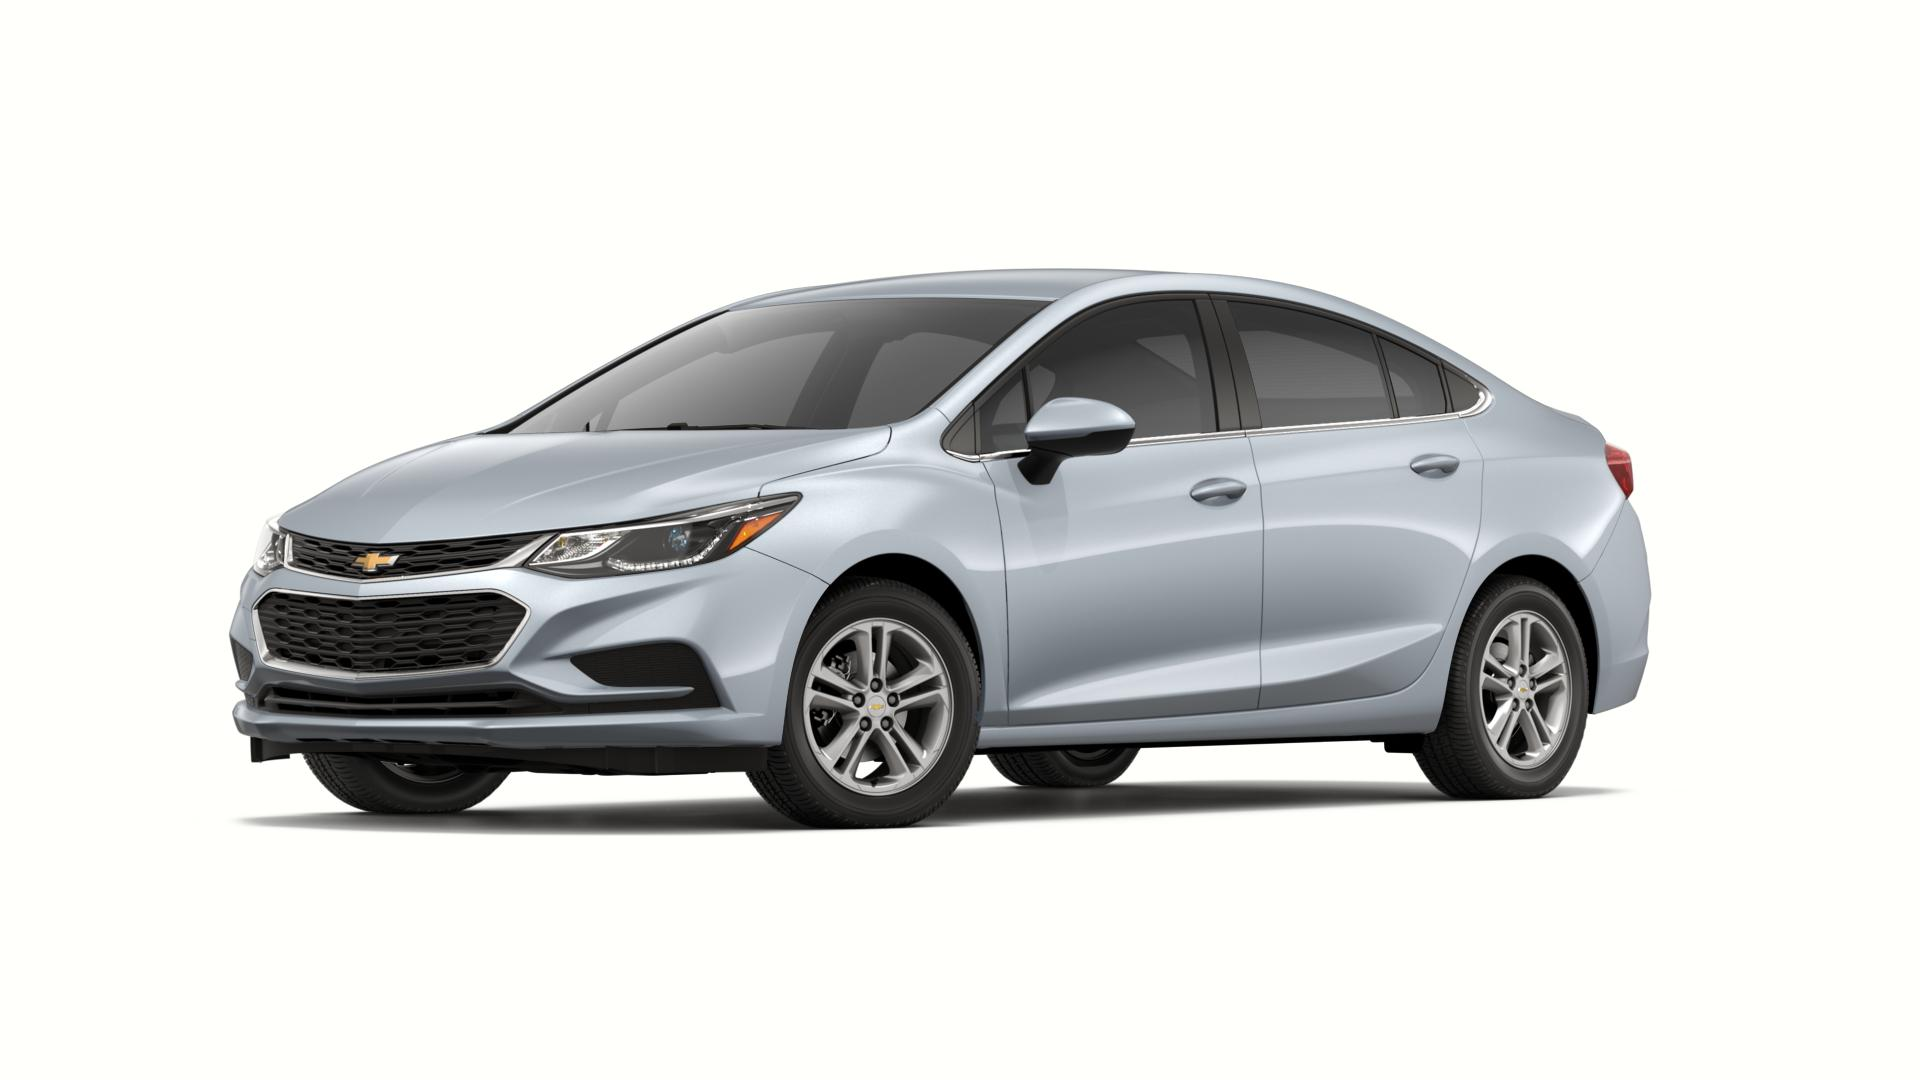 2018 chevrolet cruze specifications info cox chevrolet. Black Bedroom Furniture Sets. Home Design Ideas